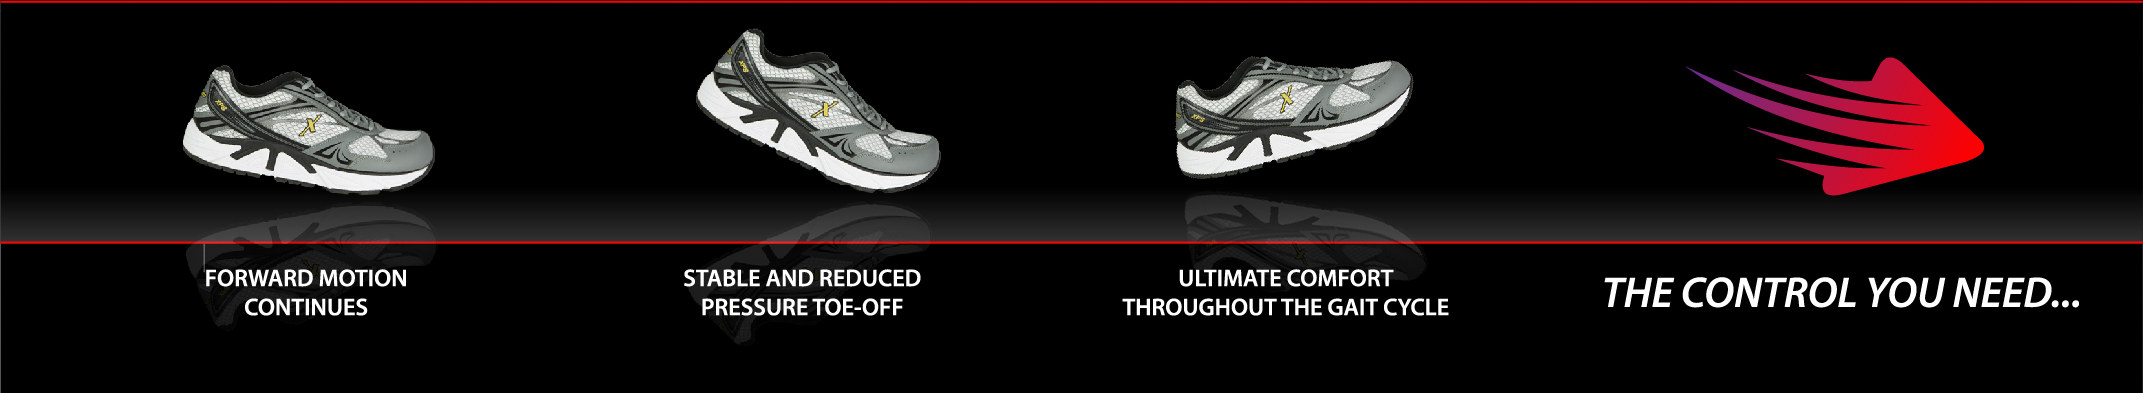 3 Xelero gray and white lace-up athletic sneakers showing the motion of a person's foot while walking